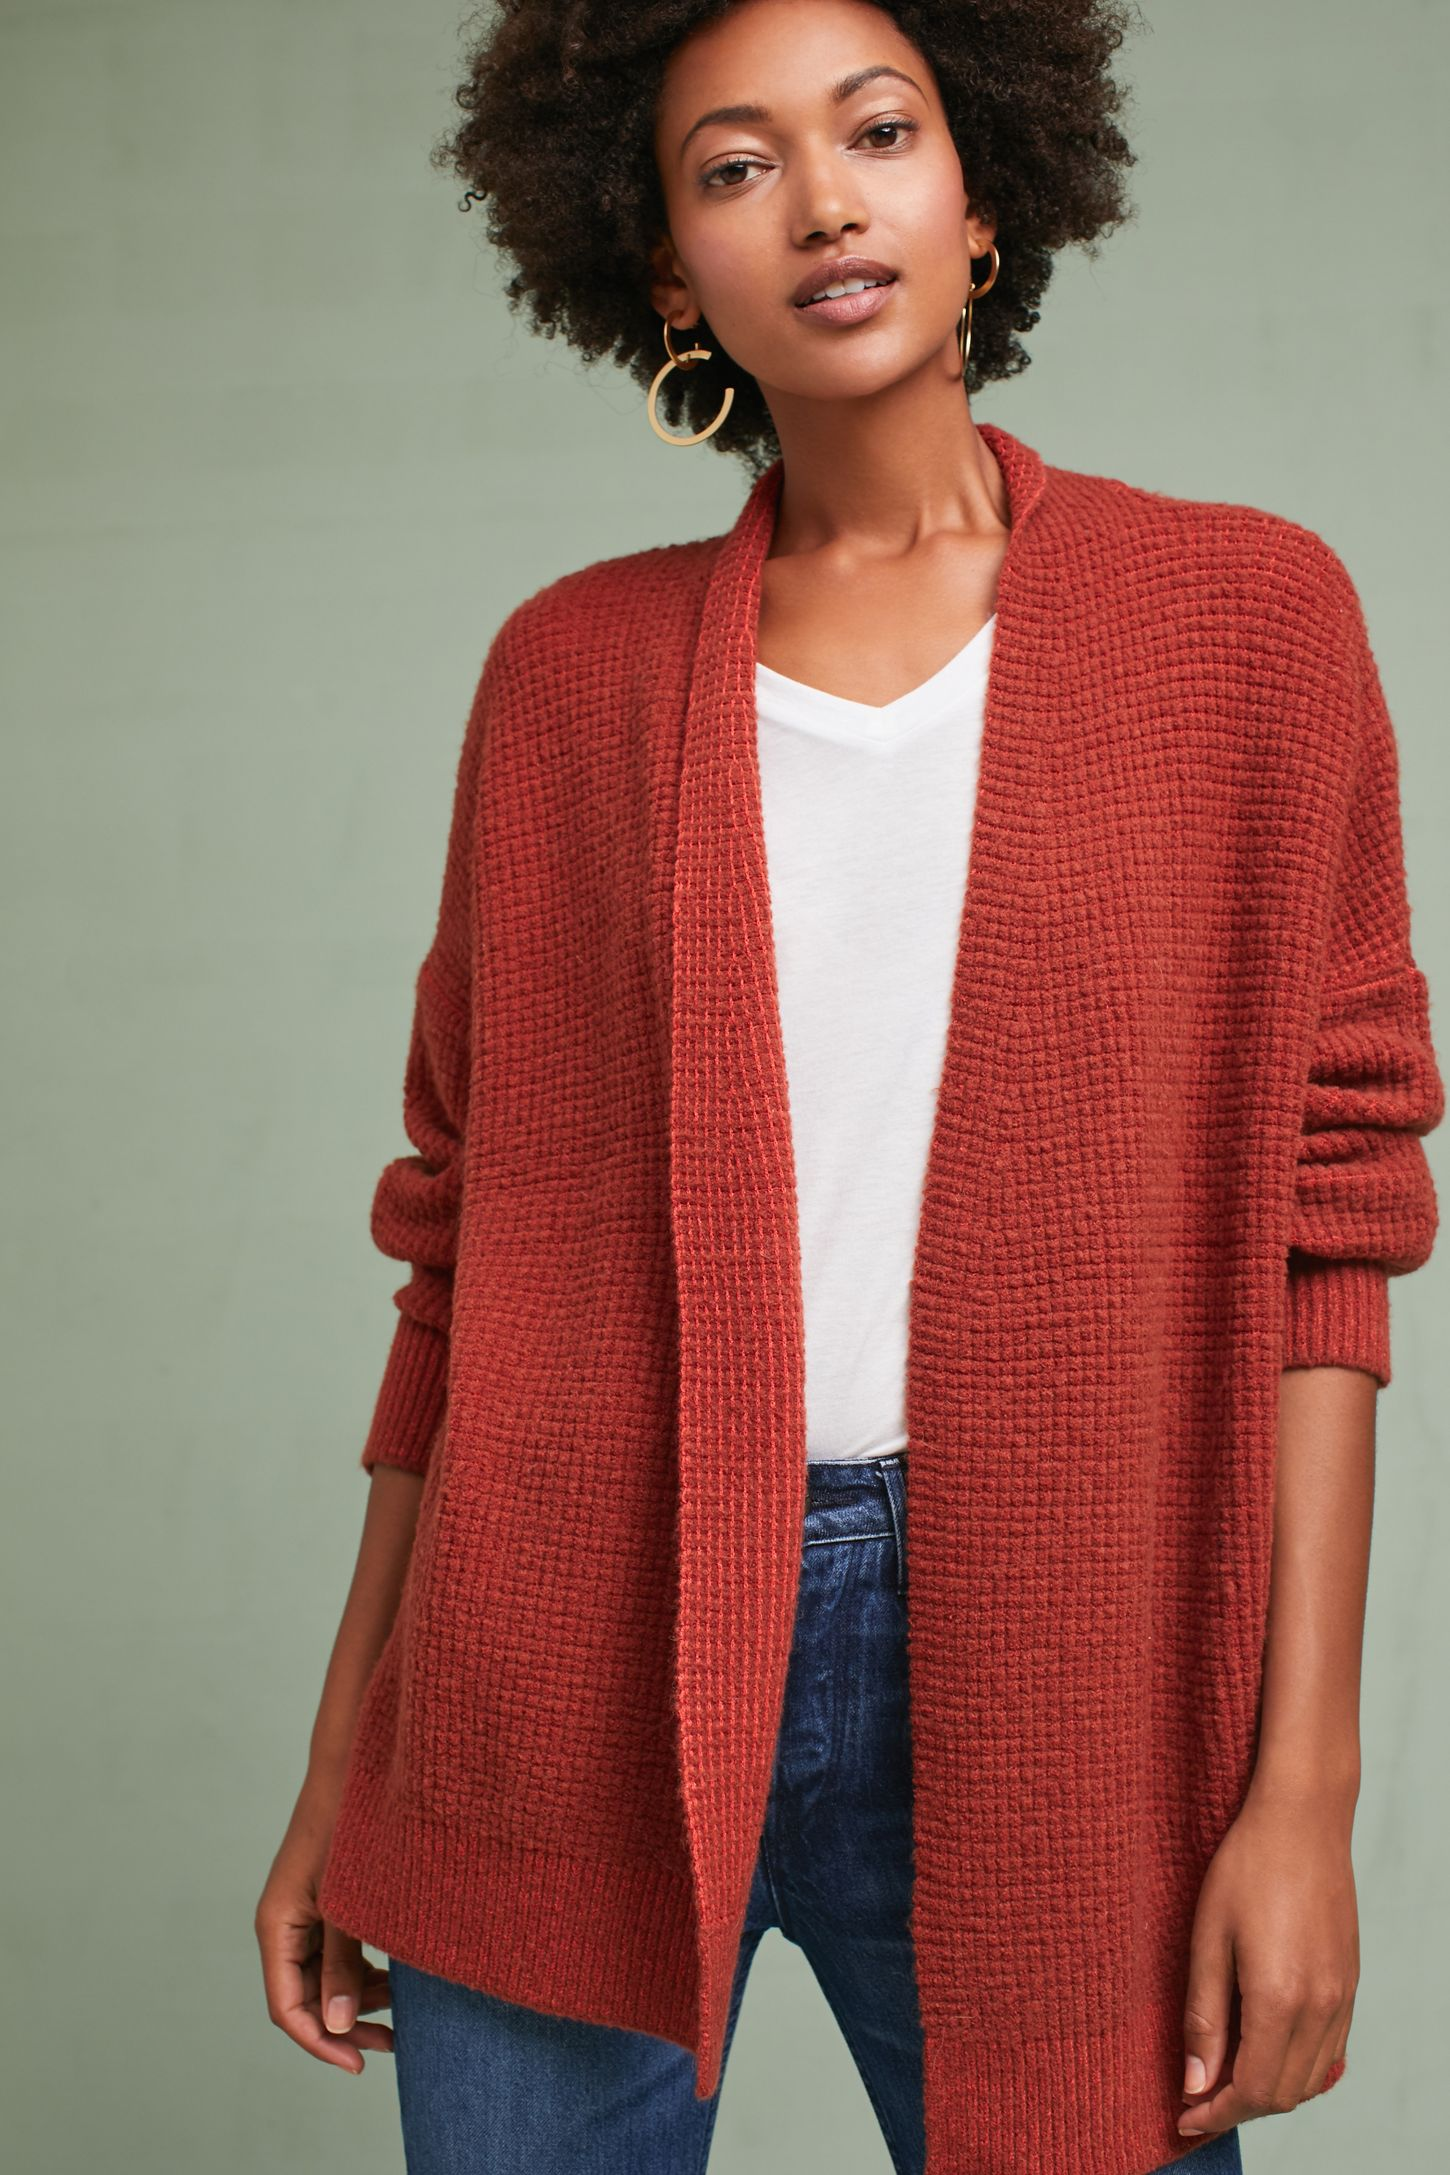 Cardigans - Women's Clothing On Sale | Anthropologie